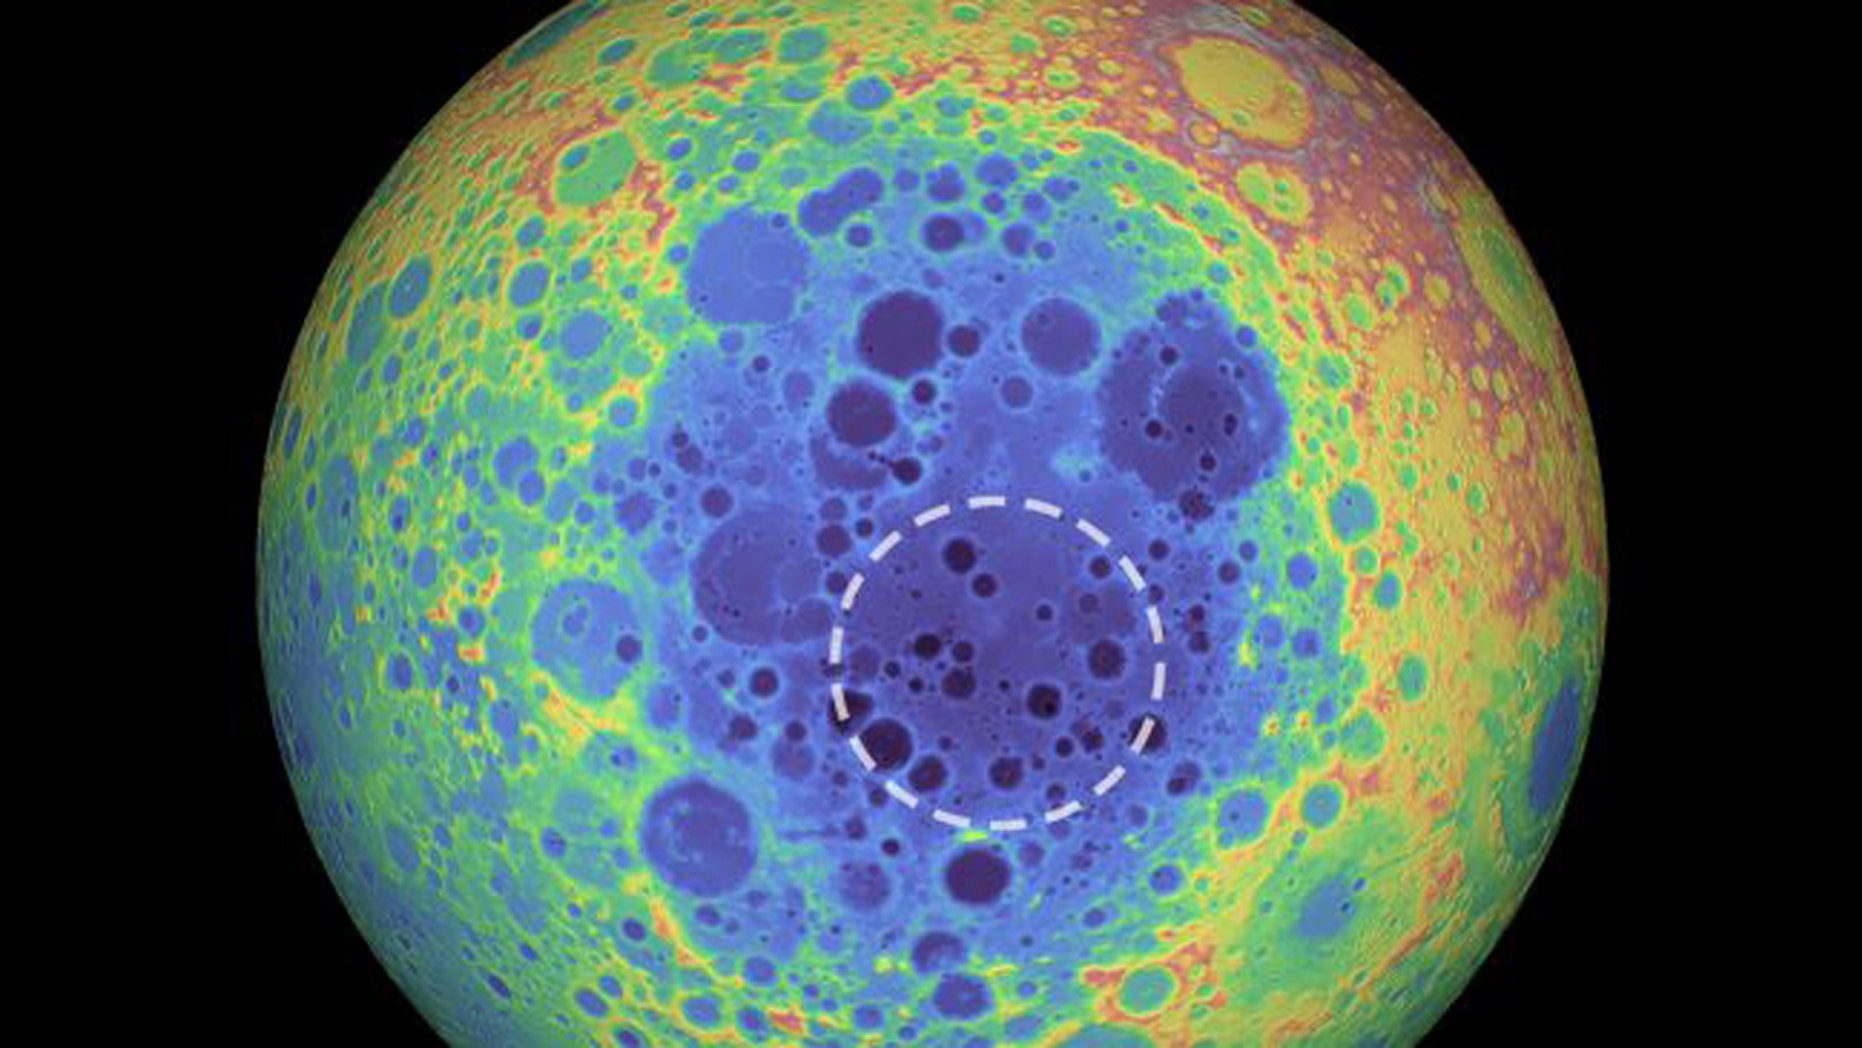 The South Pole-Aitken basin (represented by the shades of blue at the center) stretches 1,550 miles (2,500 kilometers) across and is one of the solar system's largest craters. The dashed circle indicates the spot where researchers found a weird material beneath the basin that contains metal. (Credit: NASA/Goddard Space Flight Center/University of Arizona)